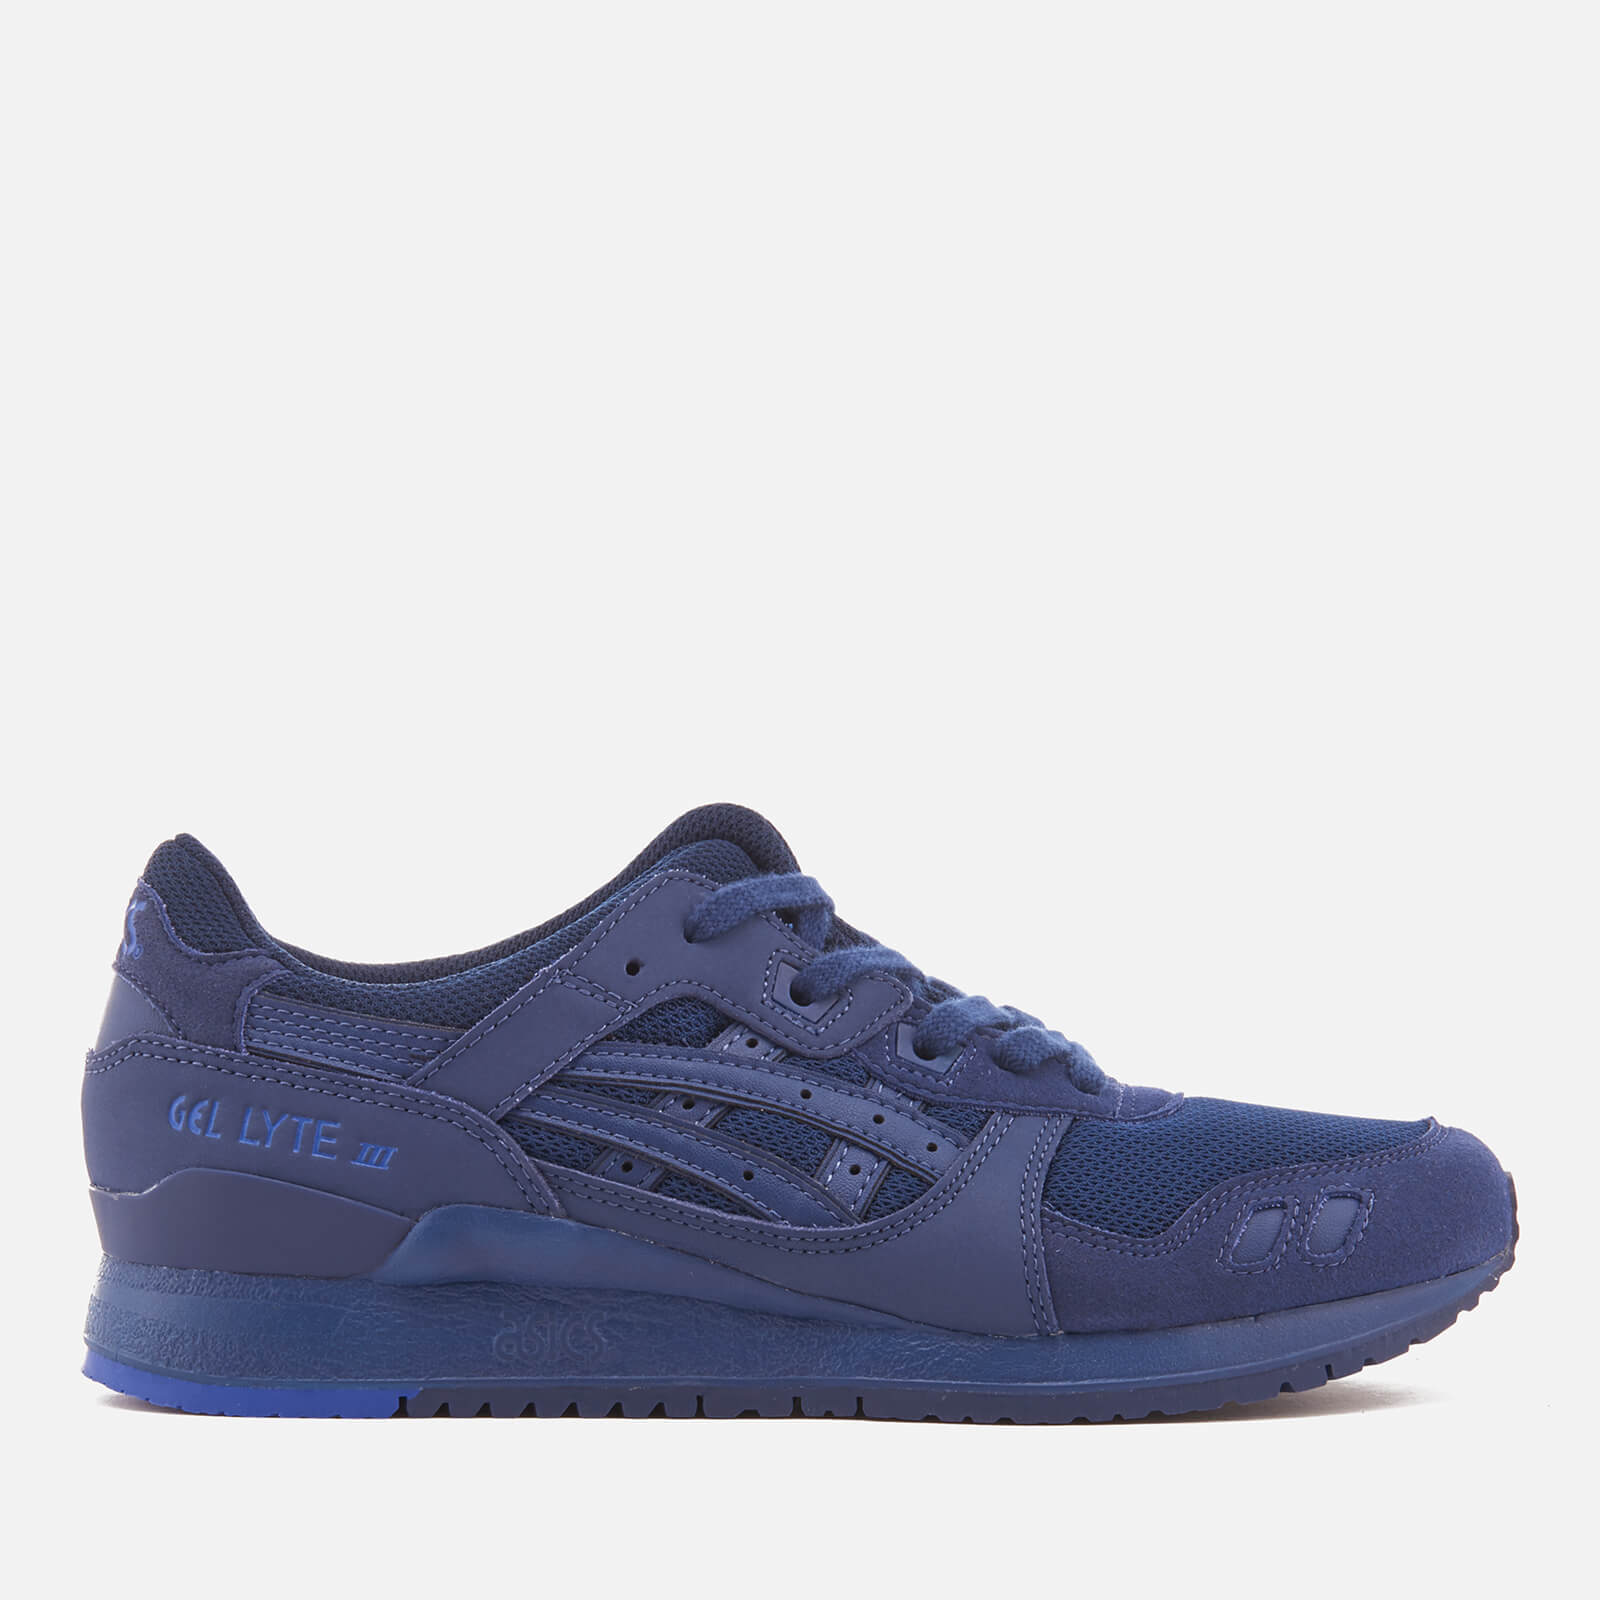 c1fe03b0de64 Asics Lifestyle Men s Gel-Lyte III Trainers - Indigo Blue Indigo Blue -  Free UK Delivery over £50